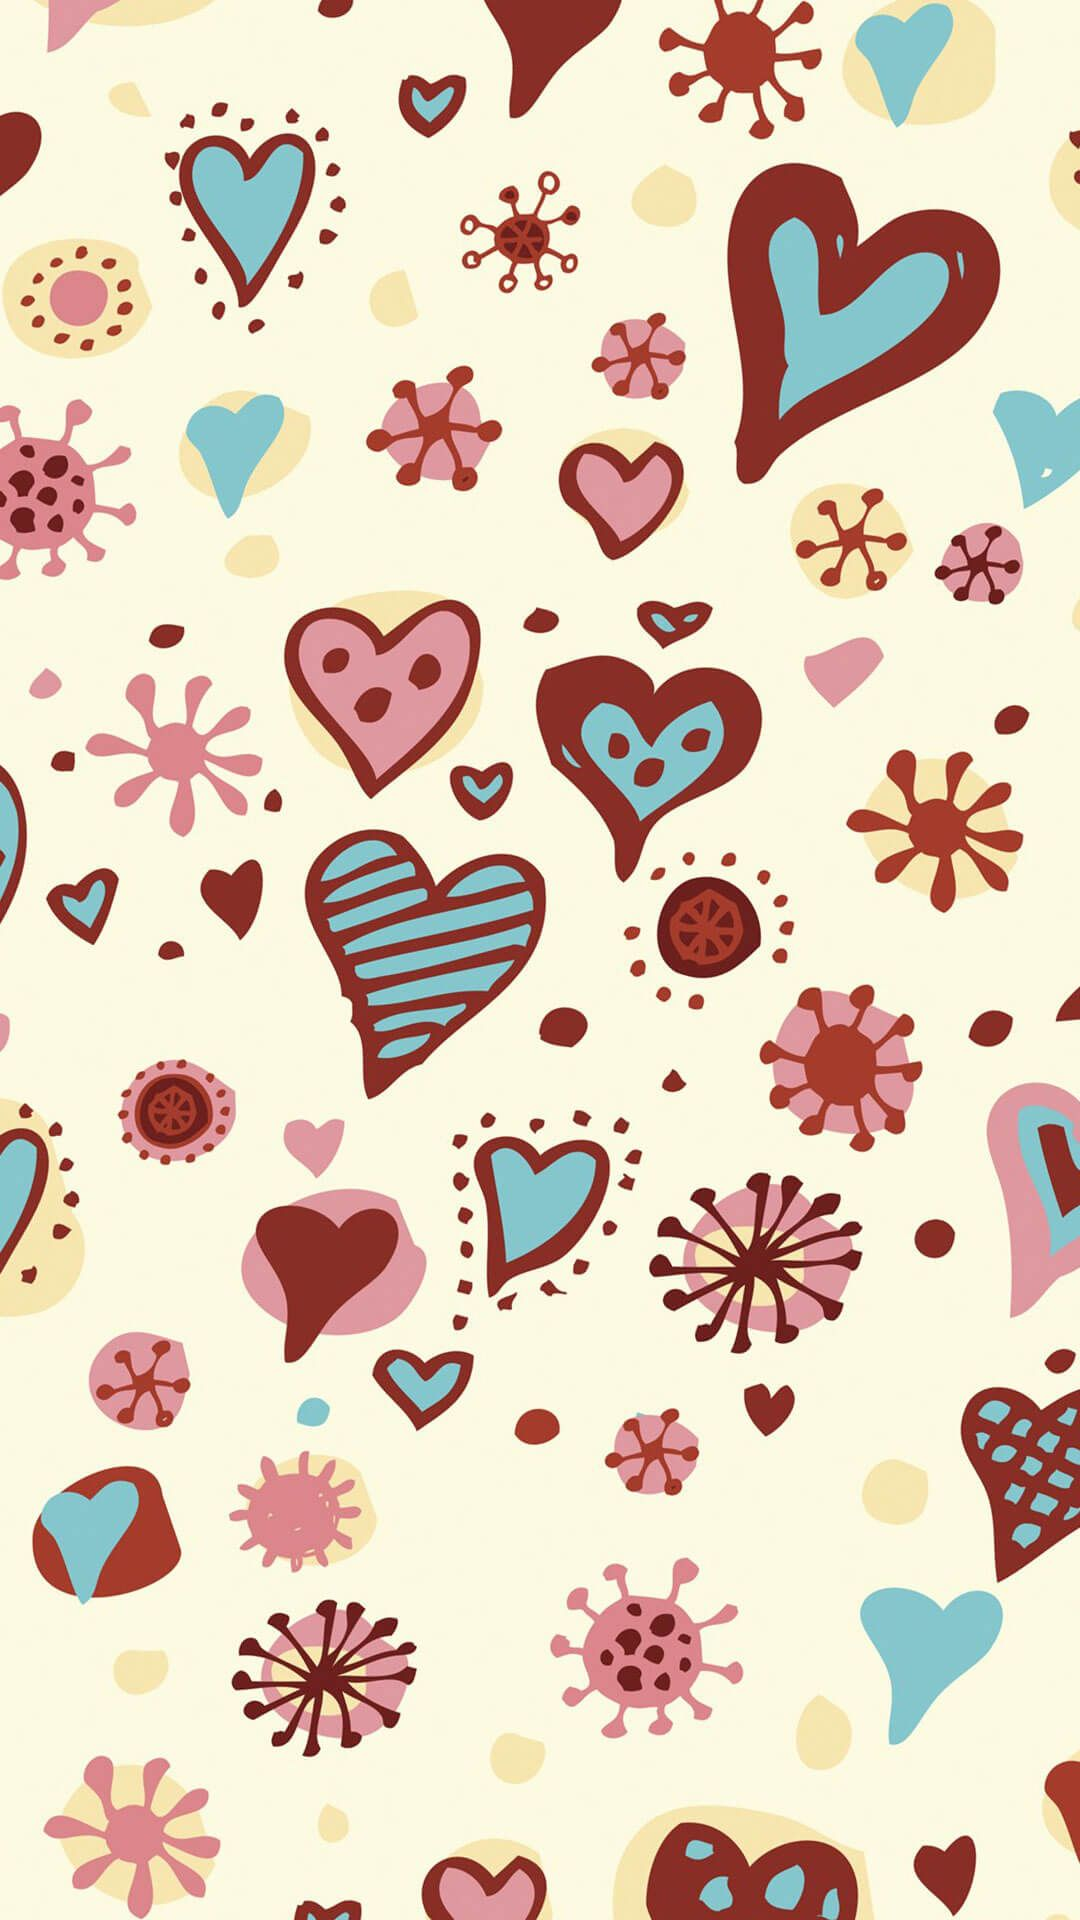 Love Wallpaper For Iphone Tumblr : Girly Vintage Tumblr Backgrounds www.pixshark.com ...